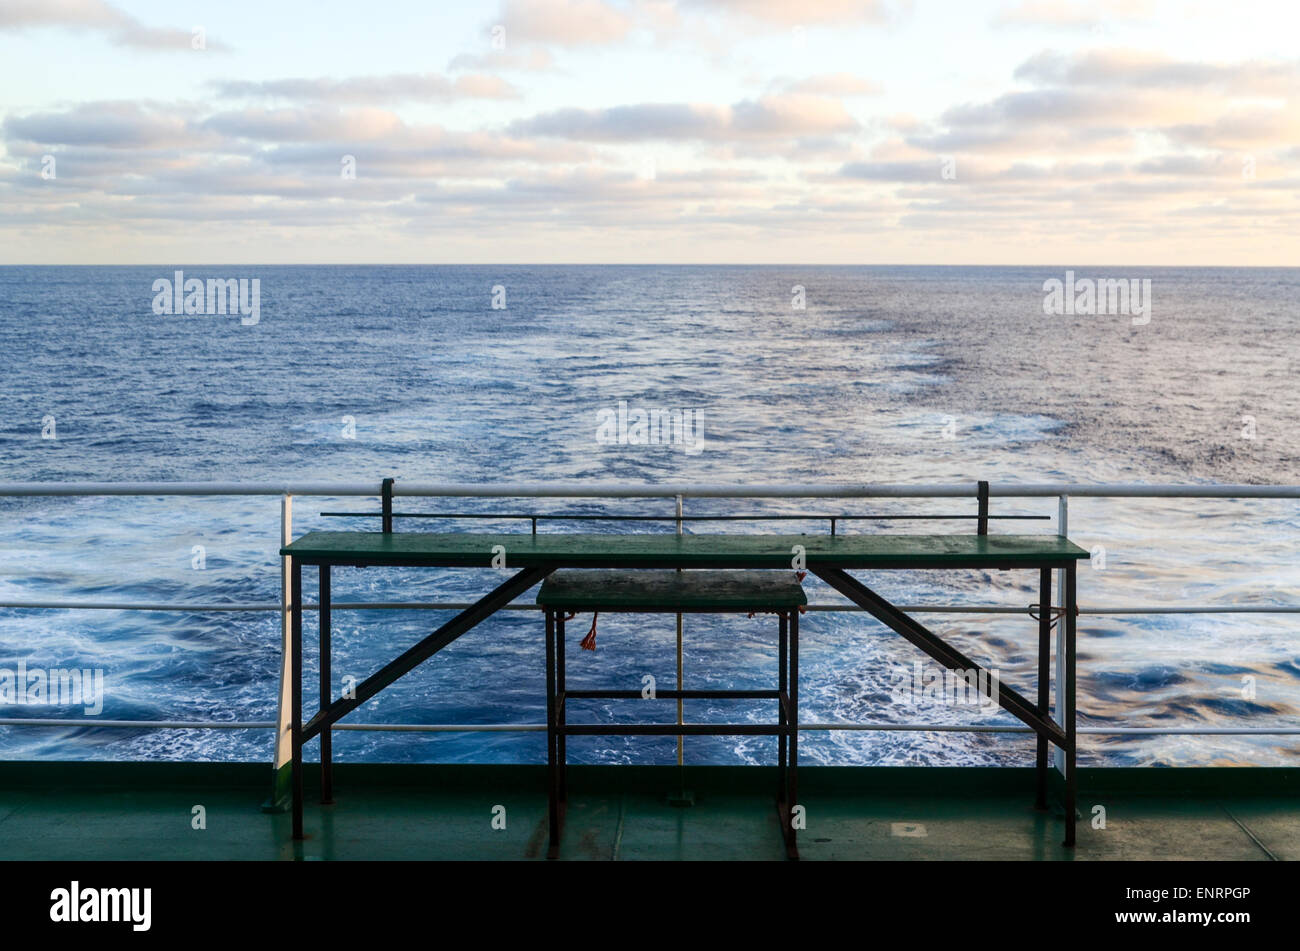 Freighter travel : table vide et trace d'un cargo en pleine mer de l'océan Atlantique Photo Stock